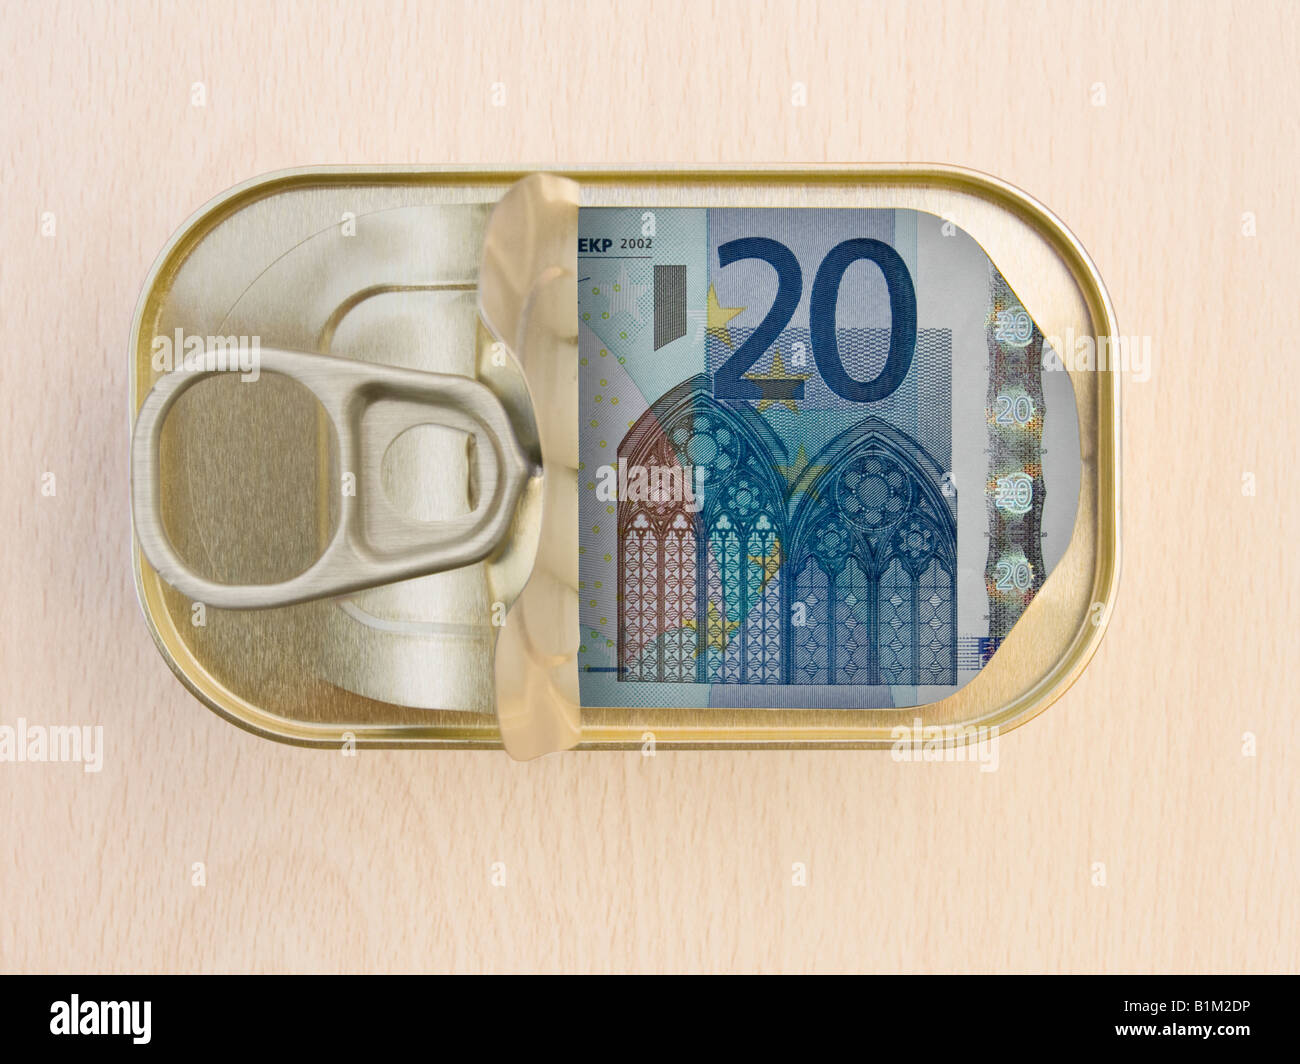 Plan view of a Ring Pull Tin containing 20 Euros on wooden surface - Stock Image